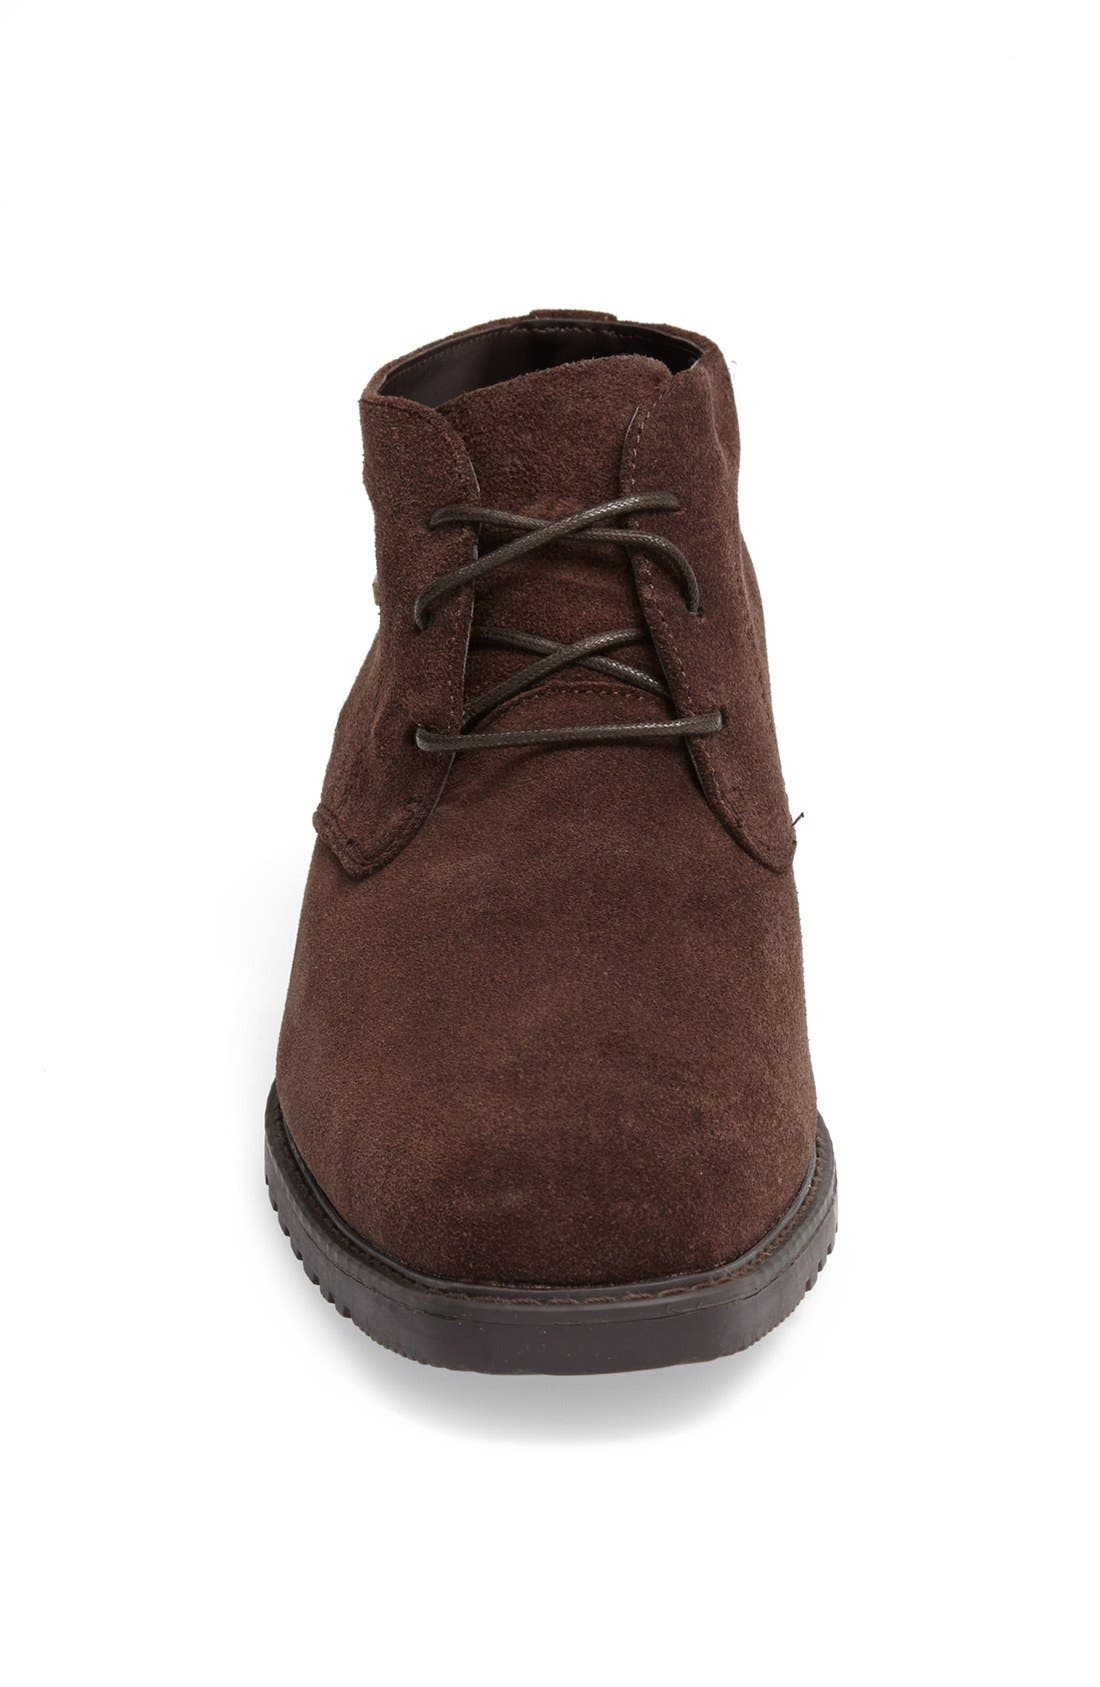 'Griffin' Waterproof Suede Chukka Boot,                             Alternate thumbnail 3, color,                             201